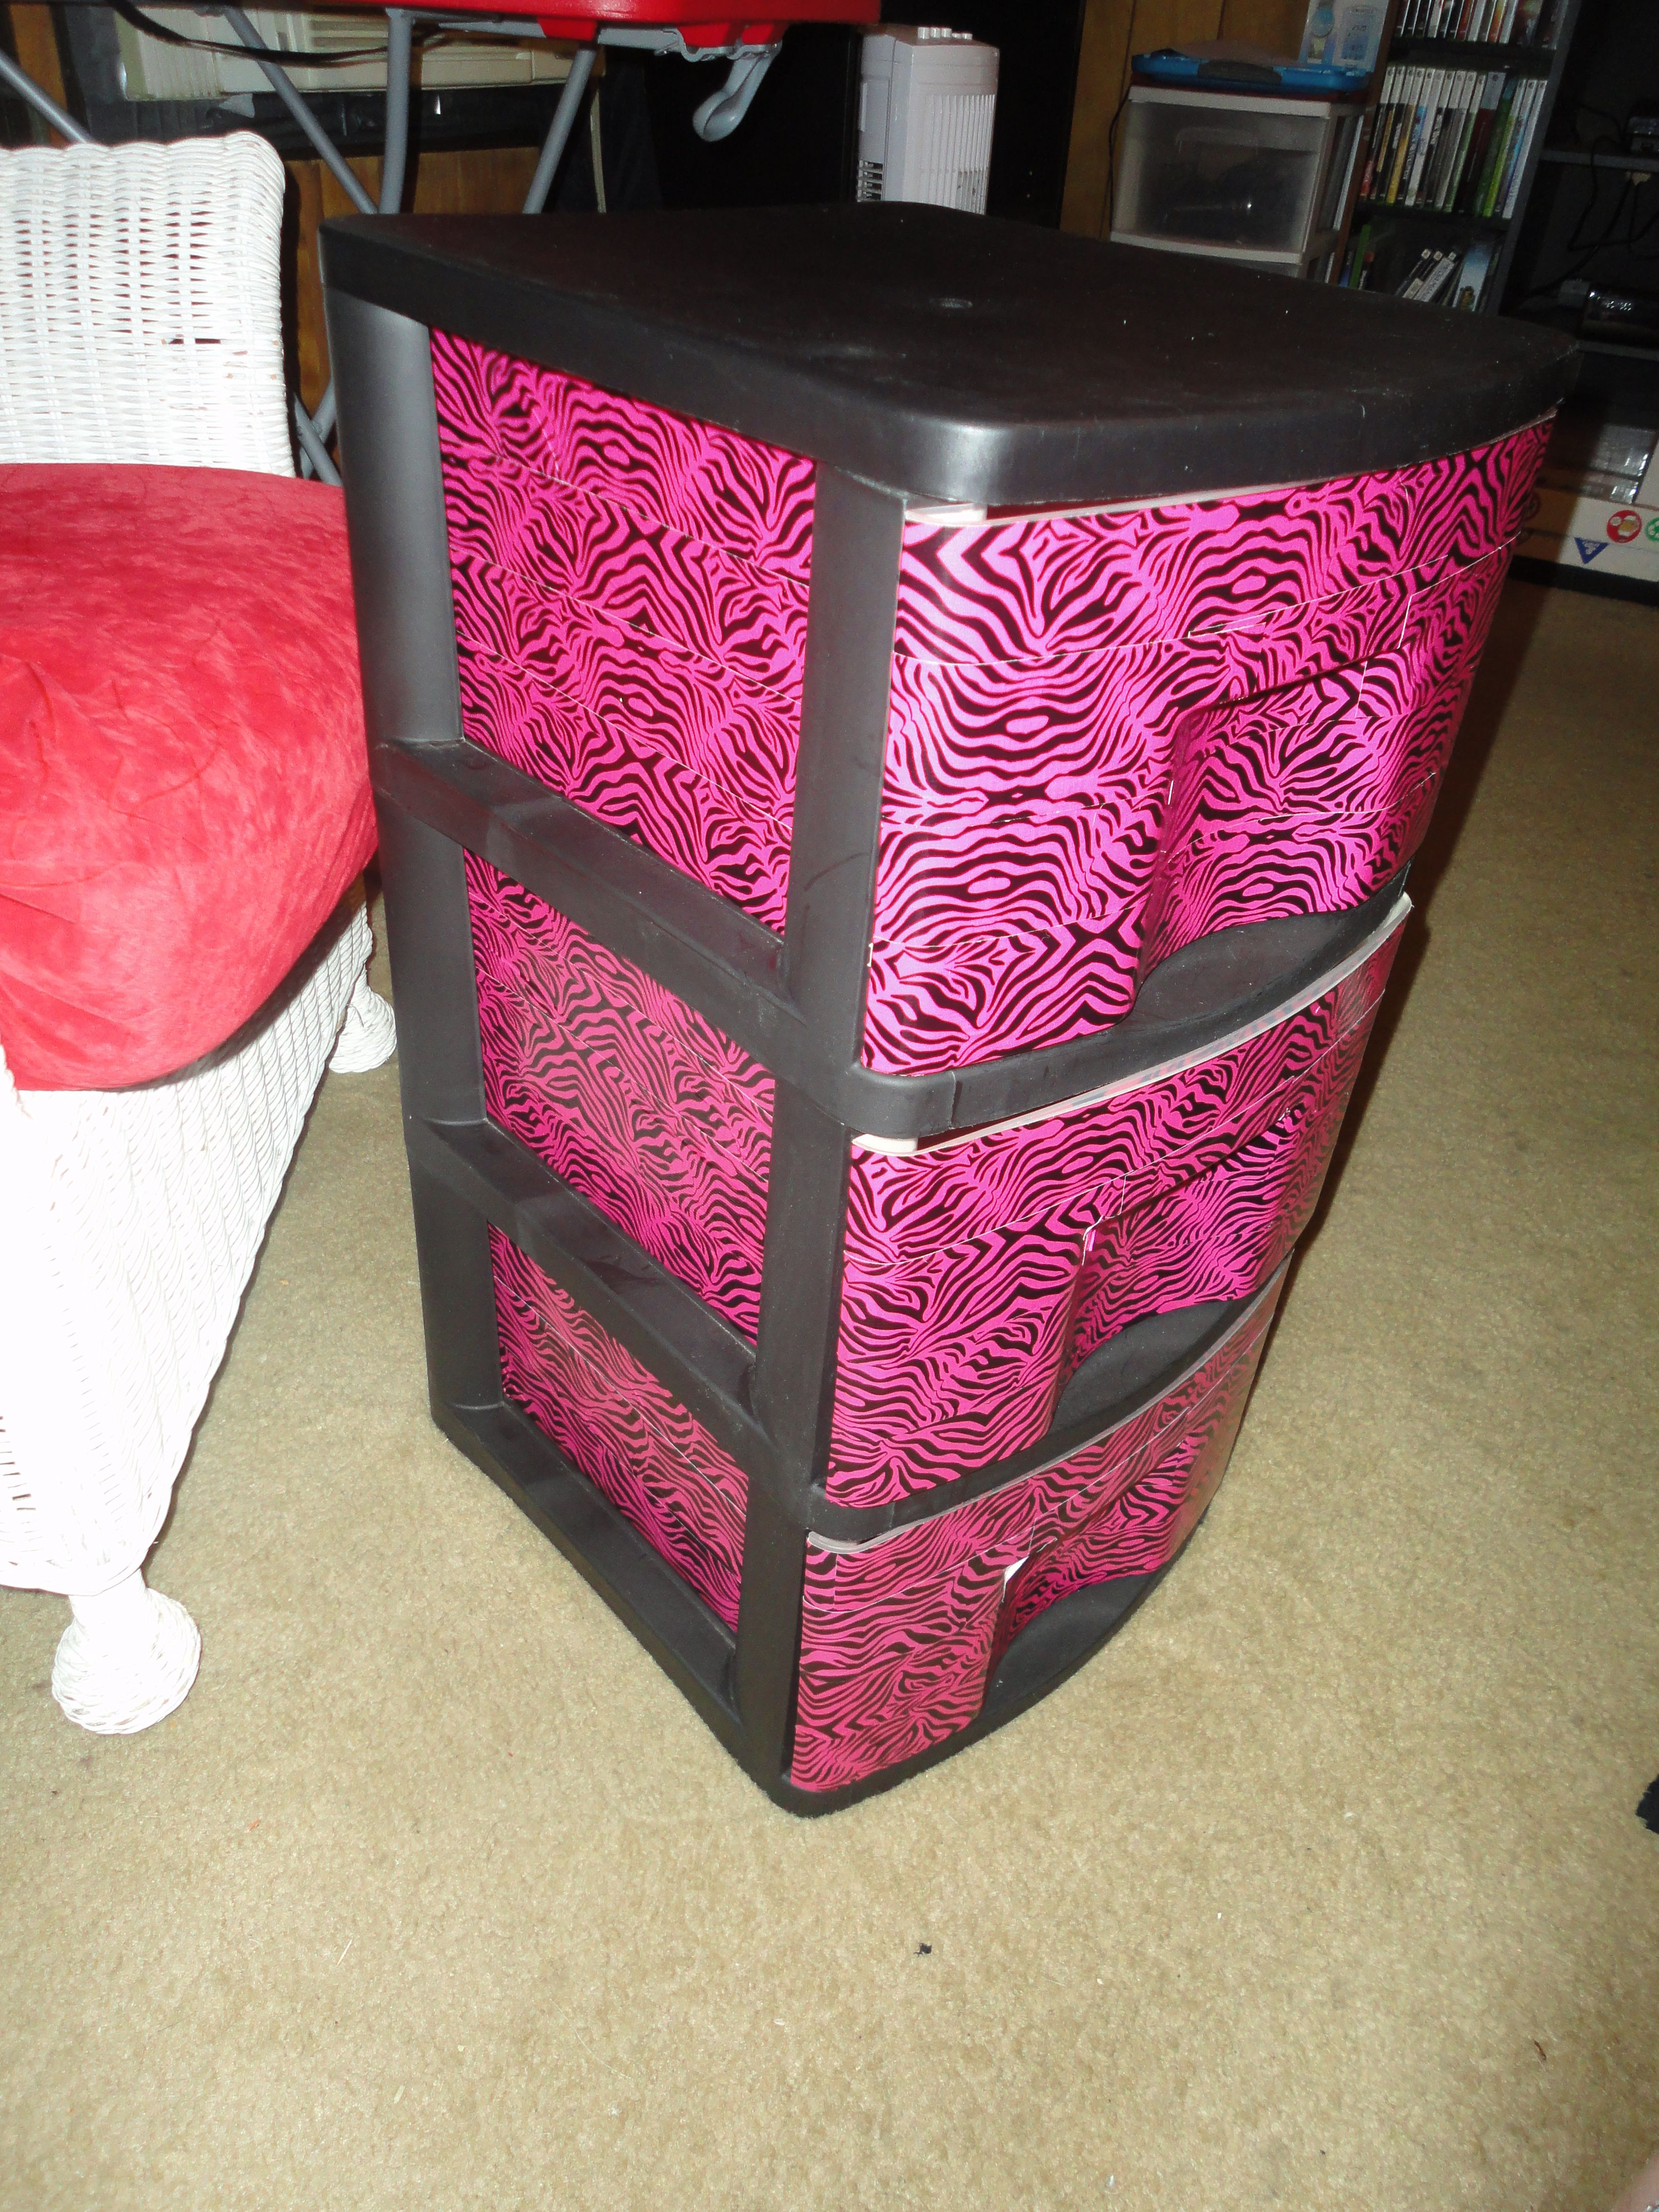 Gallery Website A once plain sterilite drawer plastic drawer set from Walmart spiced up with some zebra